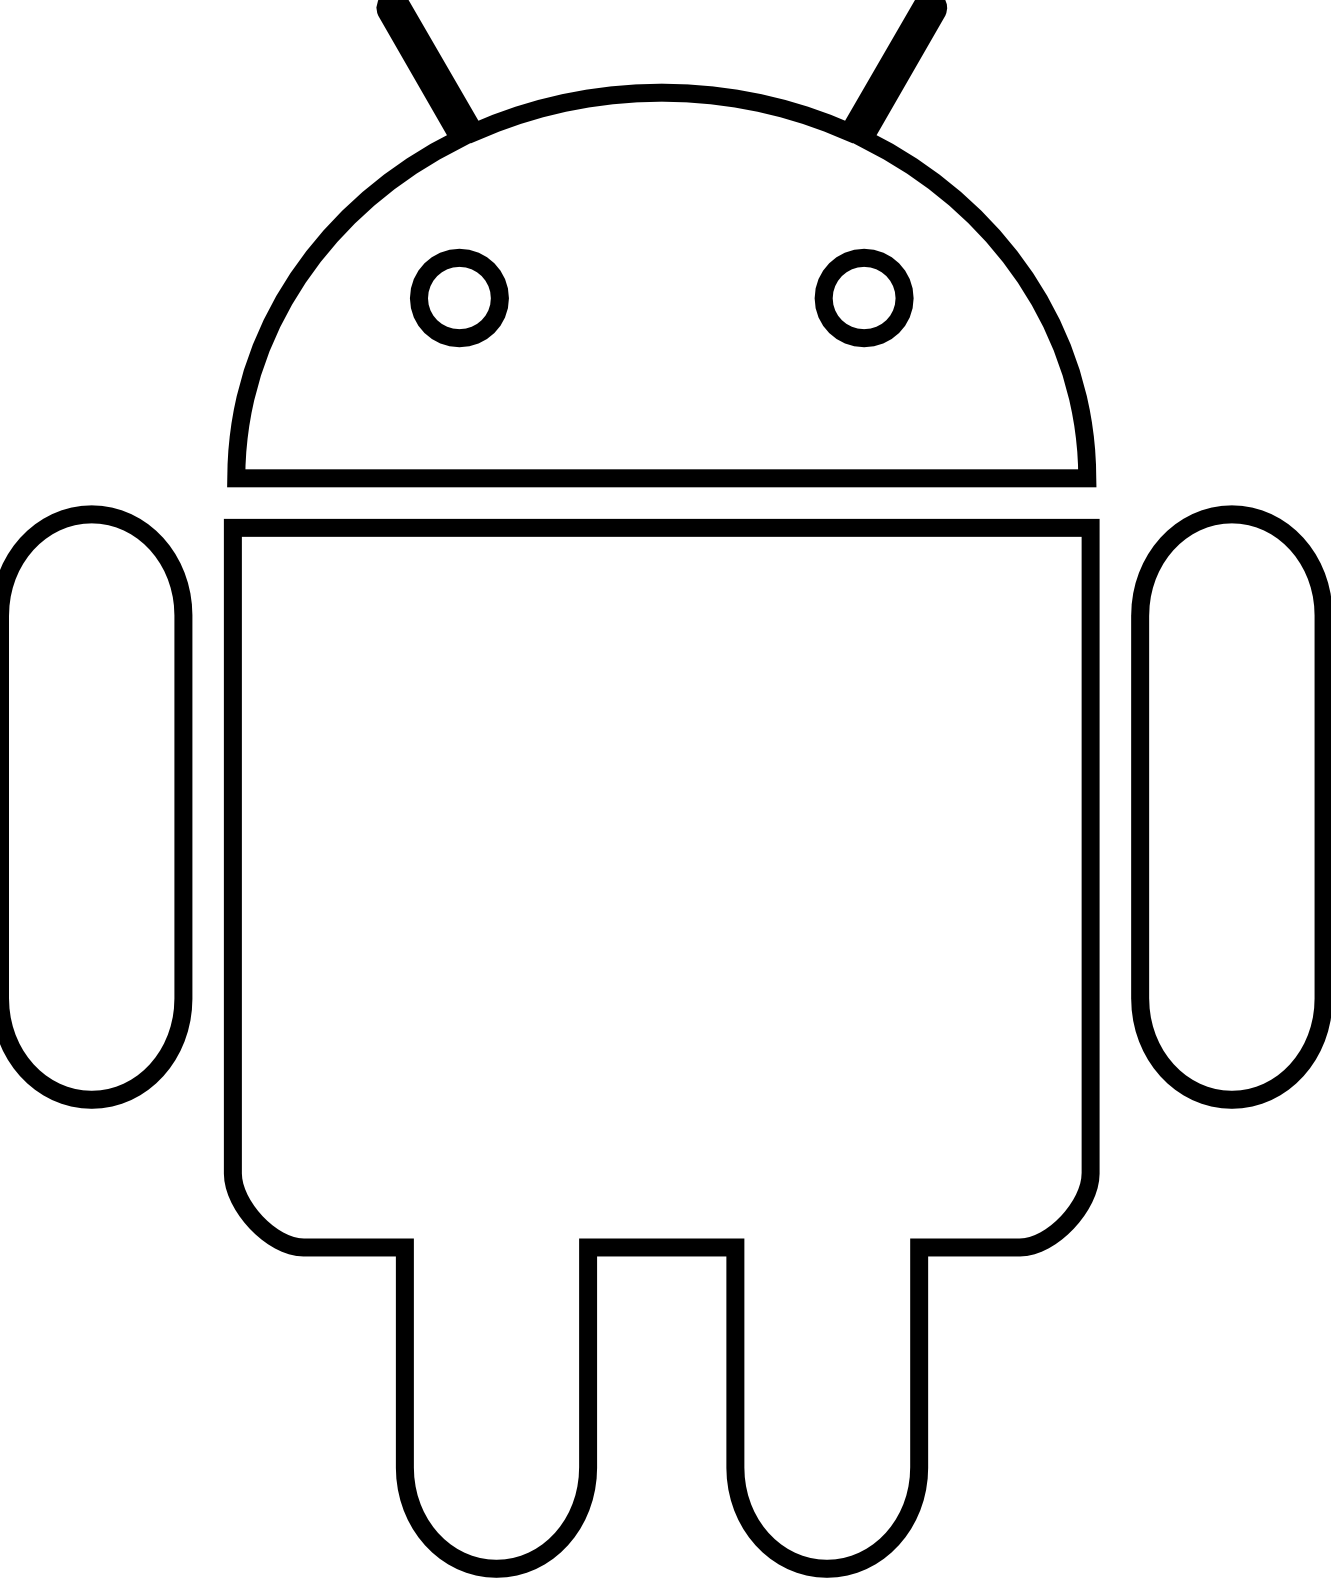 Android Robot Black White Line Art Scalable Vector Graphics Svg